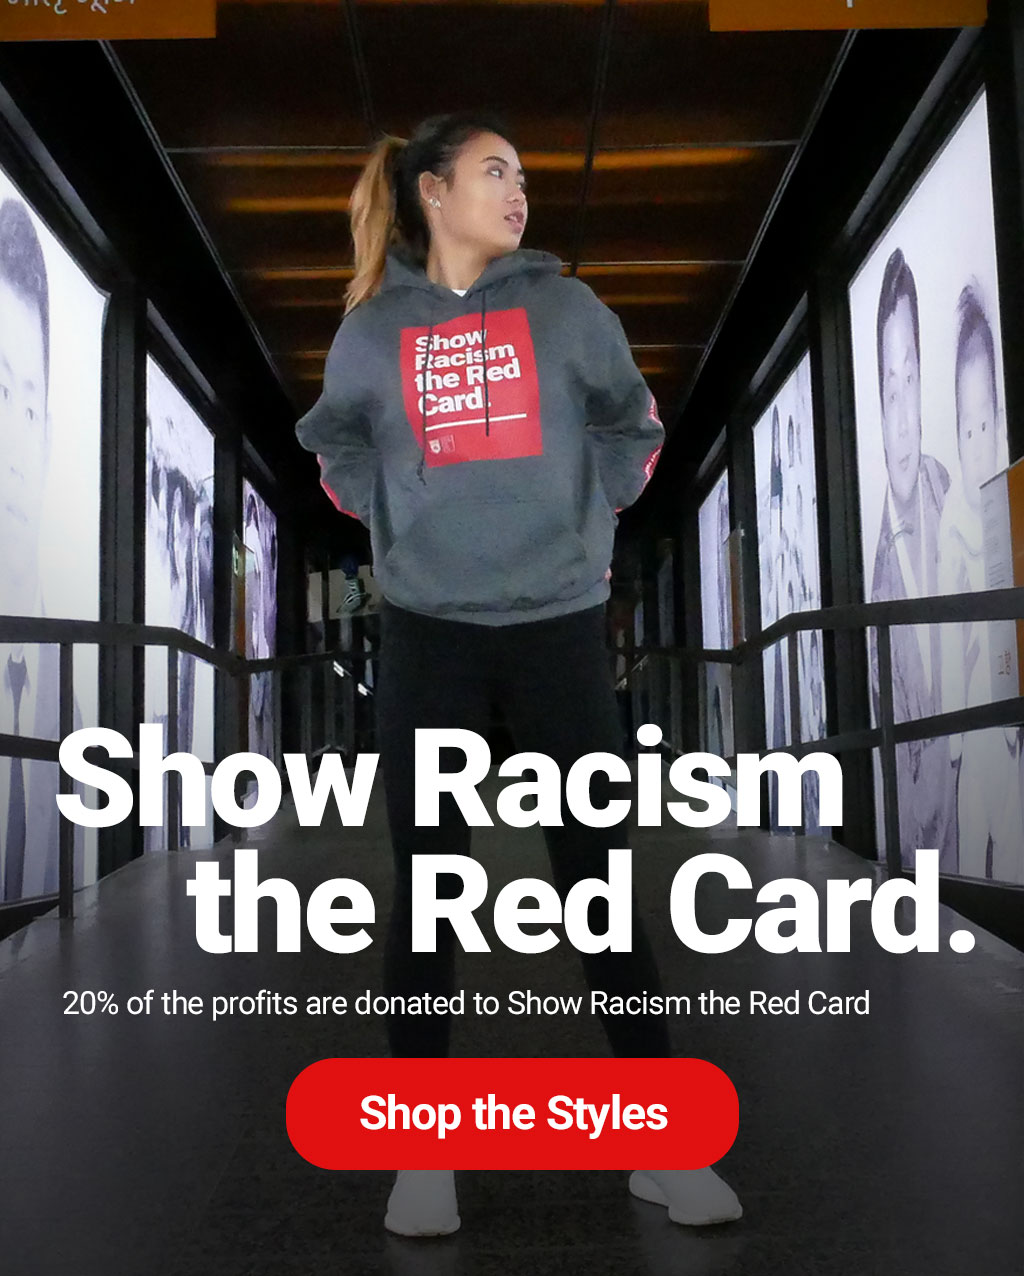 karen-national-team-full-image-header-mobile-show-racism-the-red-card-page2